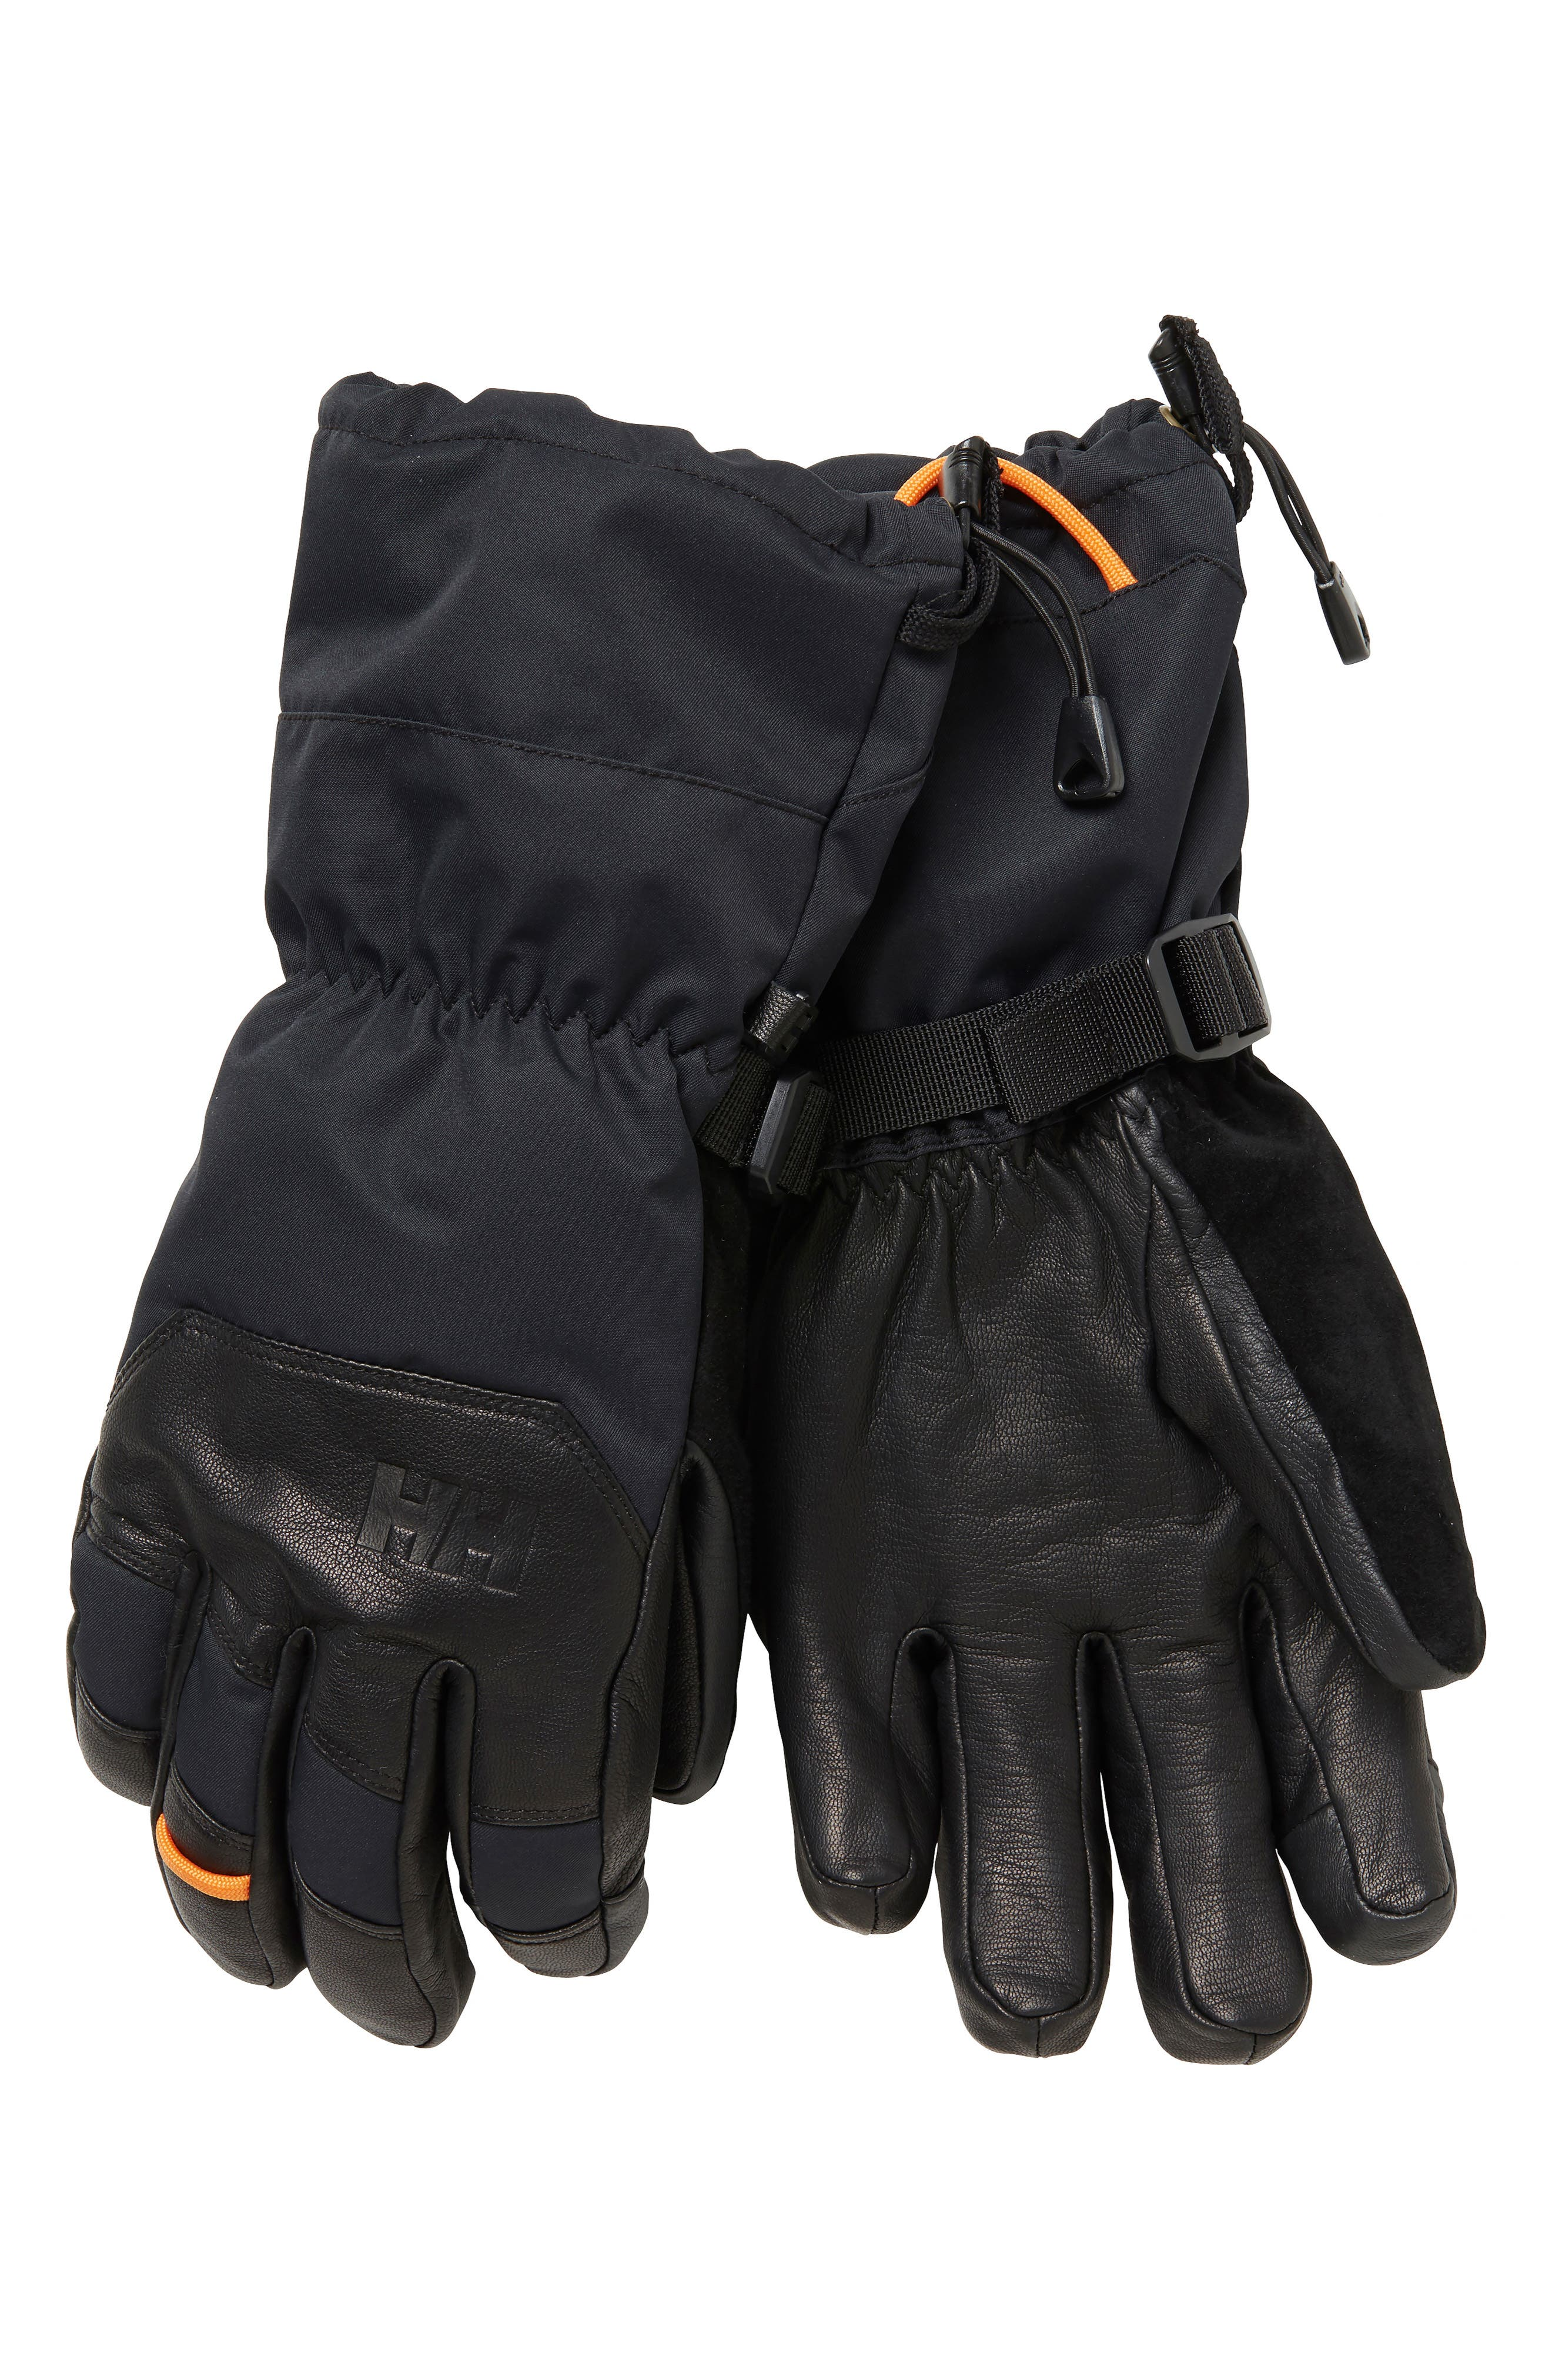 Ullr Sogn Helly Tech<sup>®</sup> Ski Gloves,                         Main,                         color, BLACK